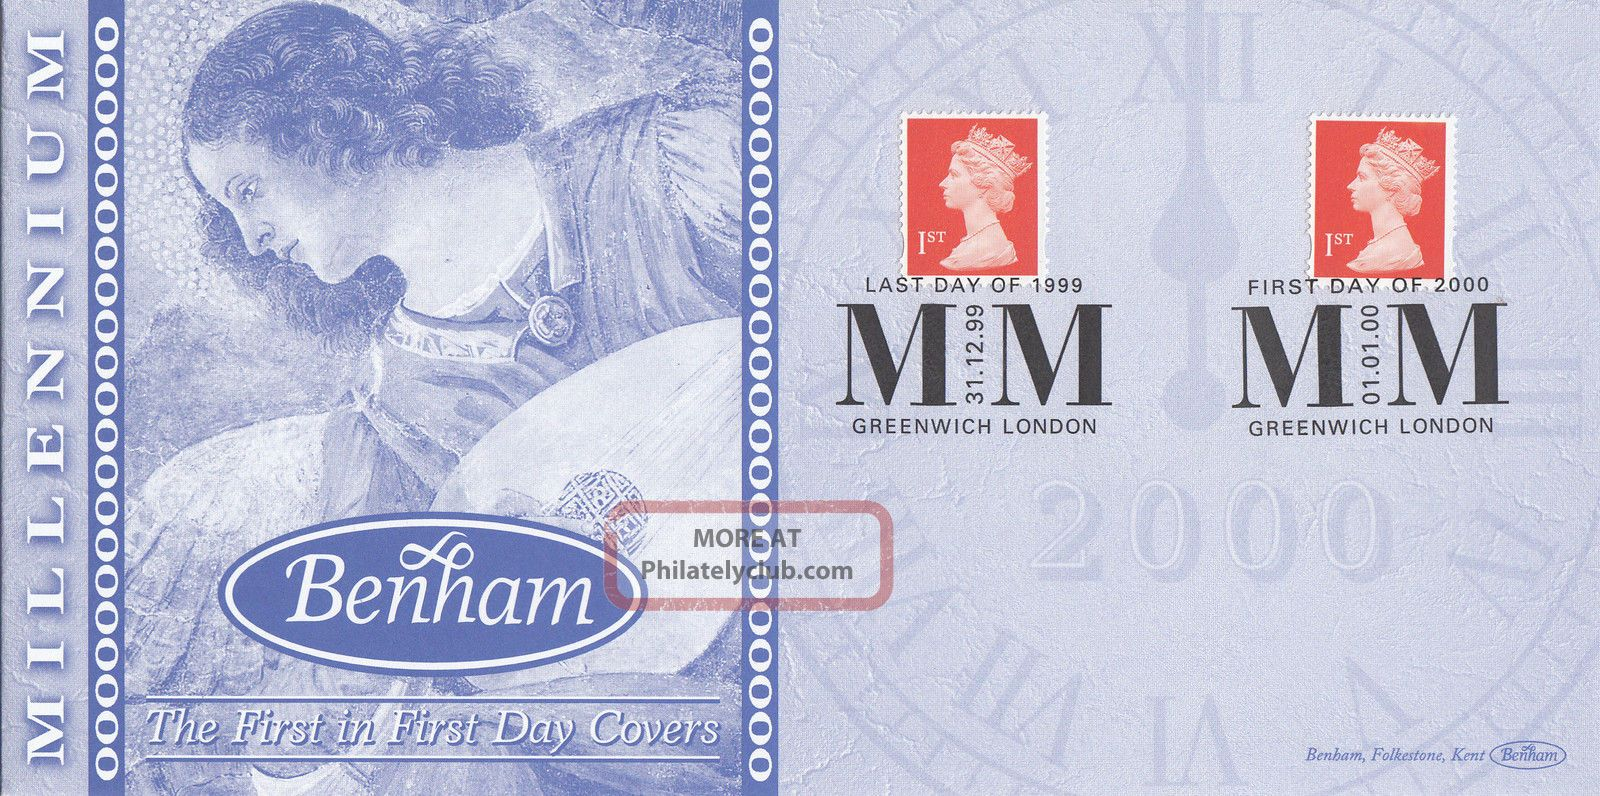 (74035) Gb Benham Cover Last Day 31 Dec 1999 1st Day 1 Jan 2000 - Greenwich Covers photo